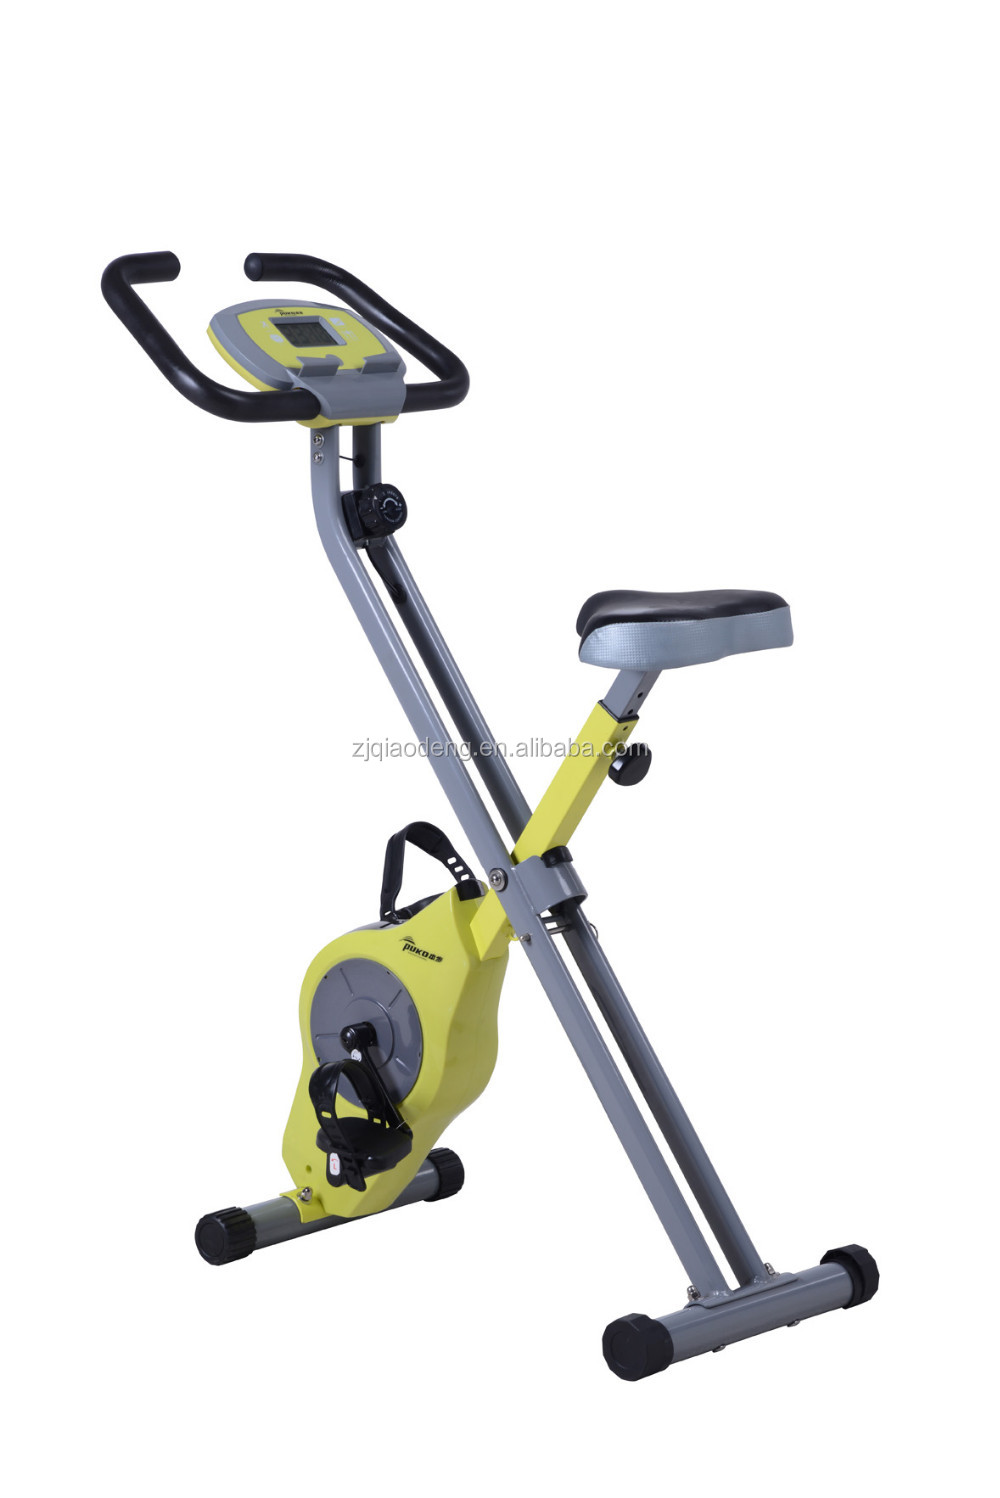 Home fitness exercise equipment to easy folding buy